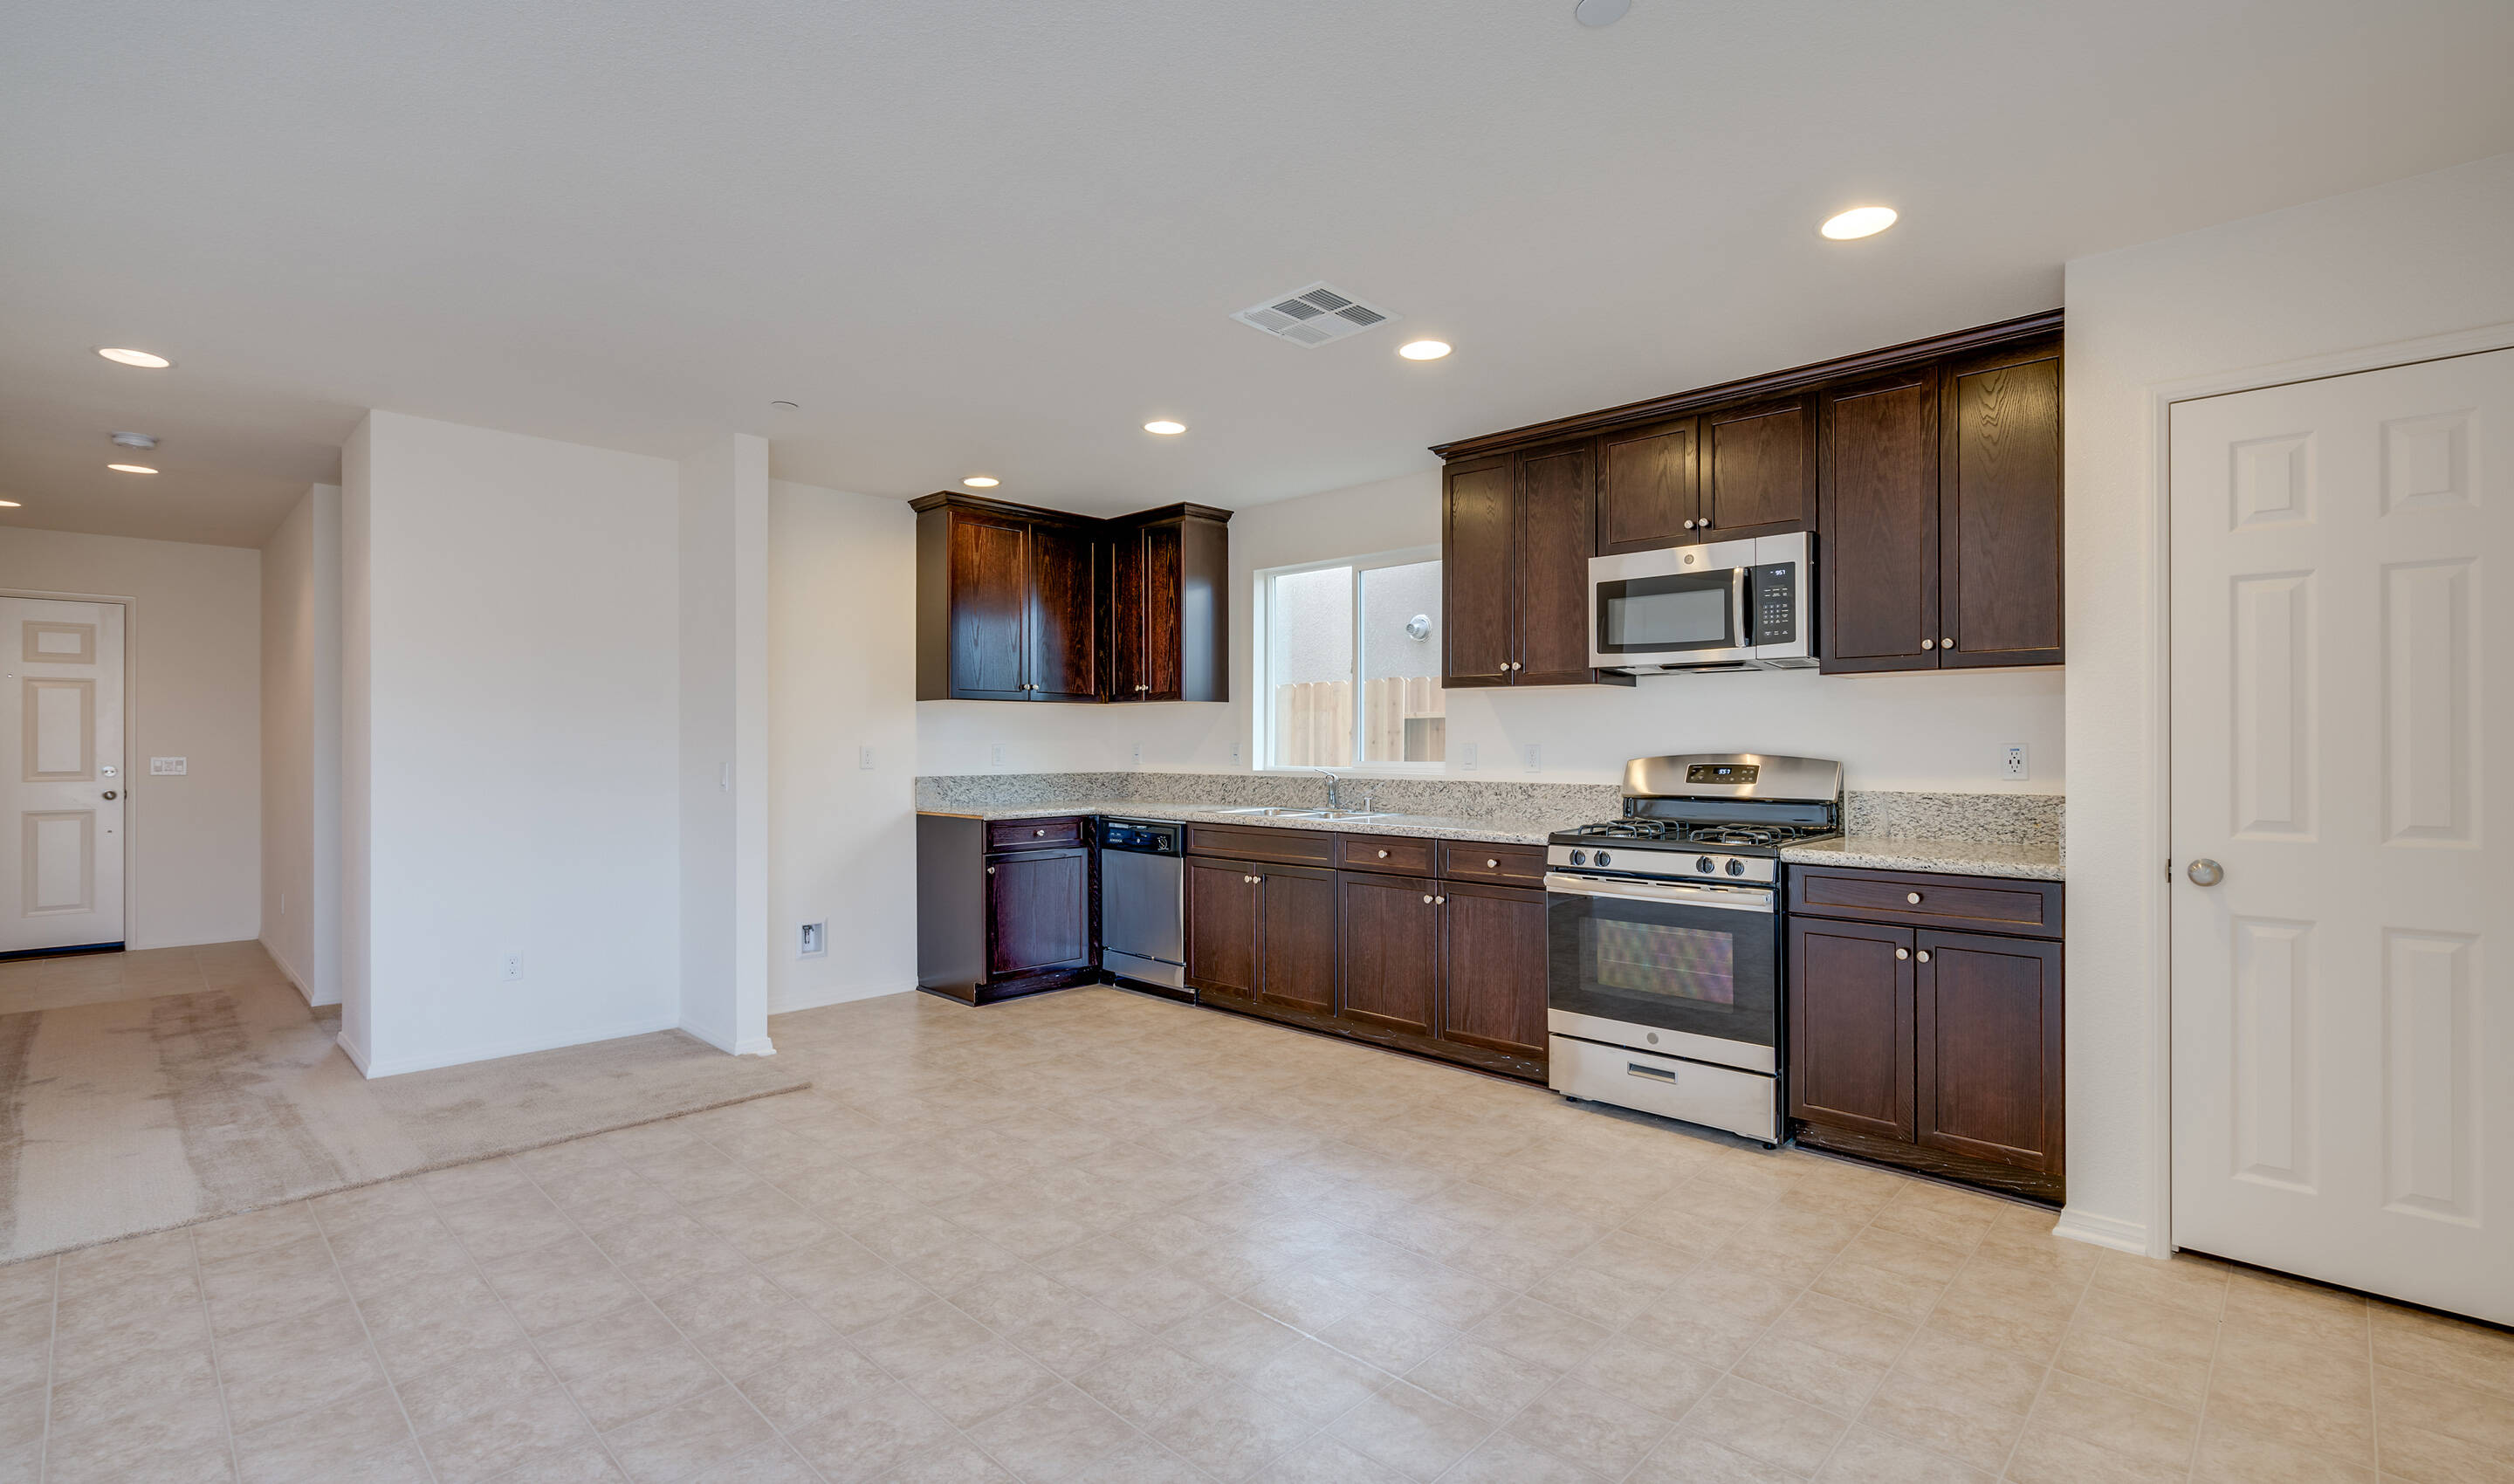 sol-foyer-to-kitchen-aspire-at-arvin-new-homes-arvin-ca